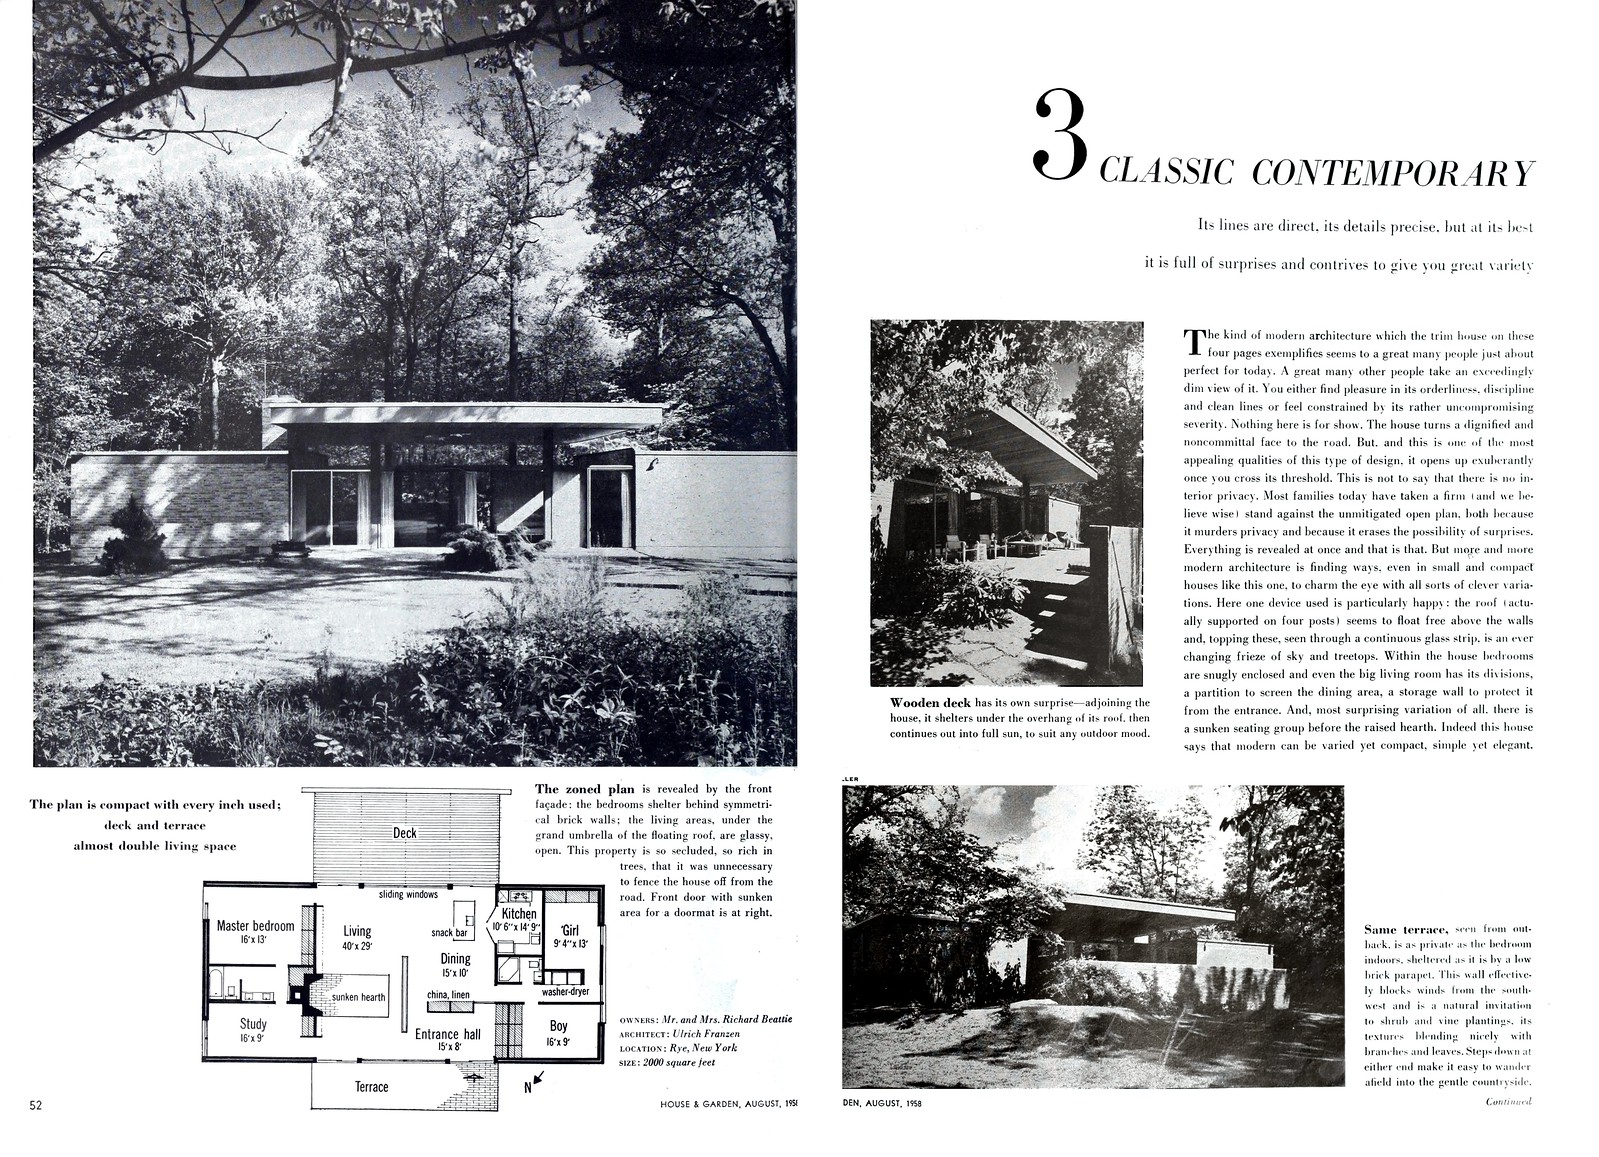 Ulrich Franzen - Beattie Residence - Rye, New York - 1958 (1 of 2)